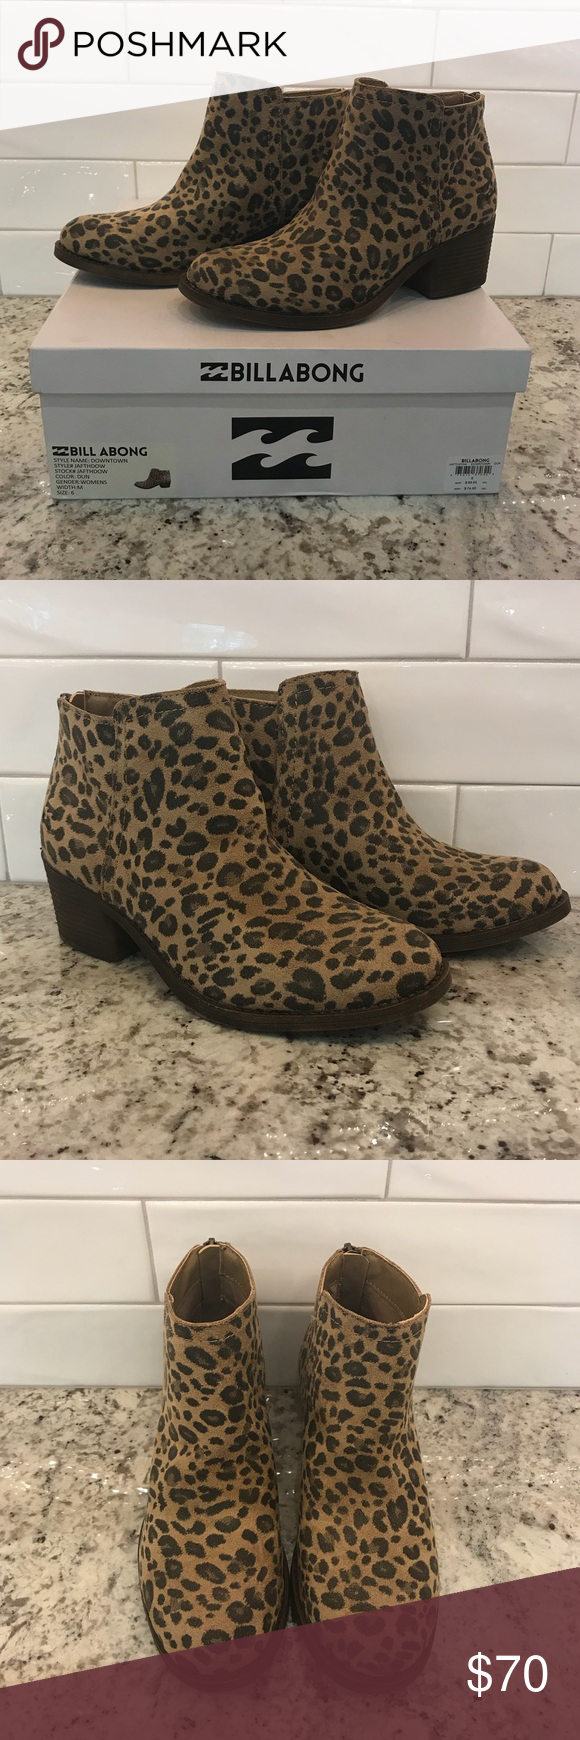 63f4e0689f05 [Billabong] Downtown Leopard Suede Zip Ankle Boots [Billabong] Downtown  Leopard Print Suede Zip Back Ankle Boots. So perfect for fall! New in Box!